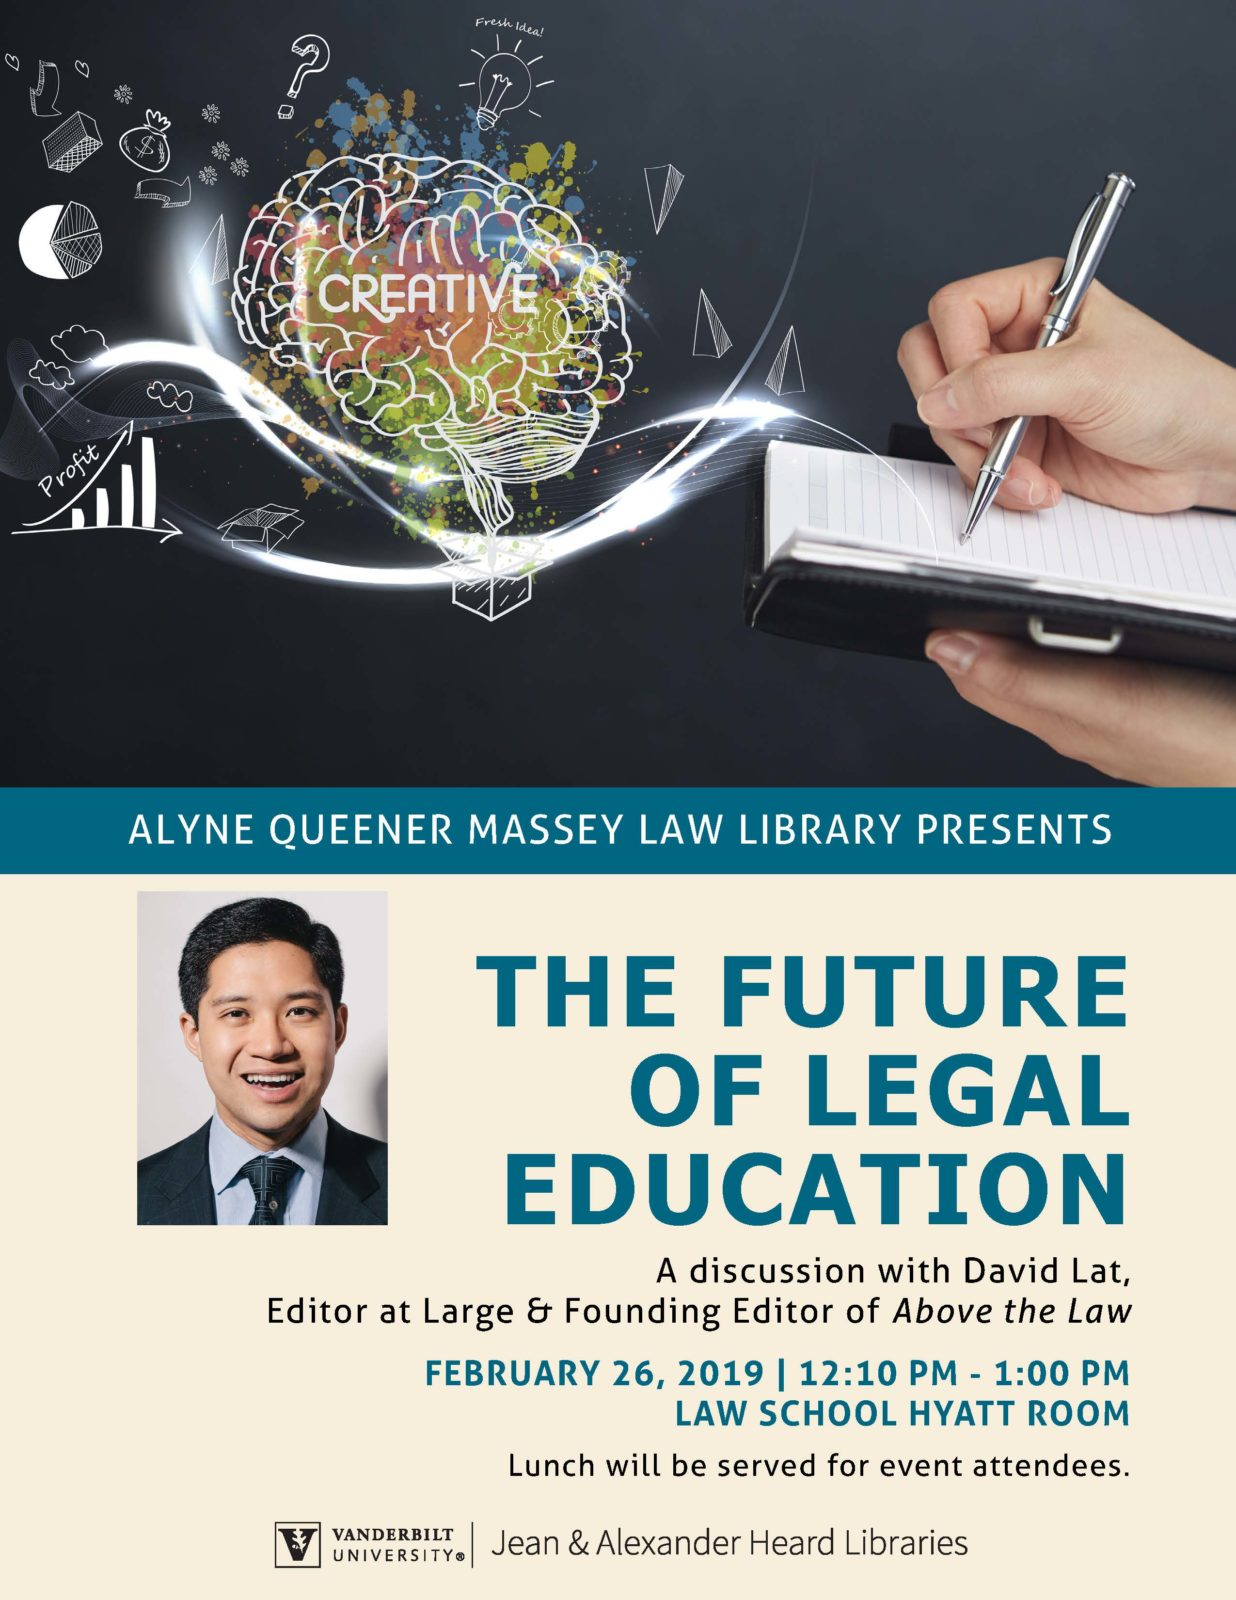 Flier for The Future of Legal Education lecture